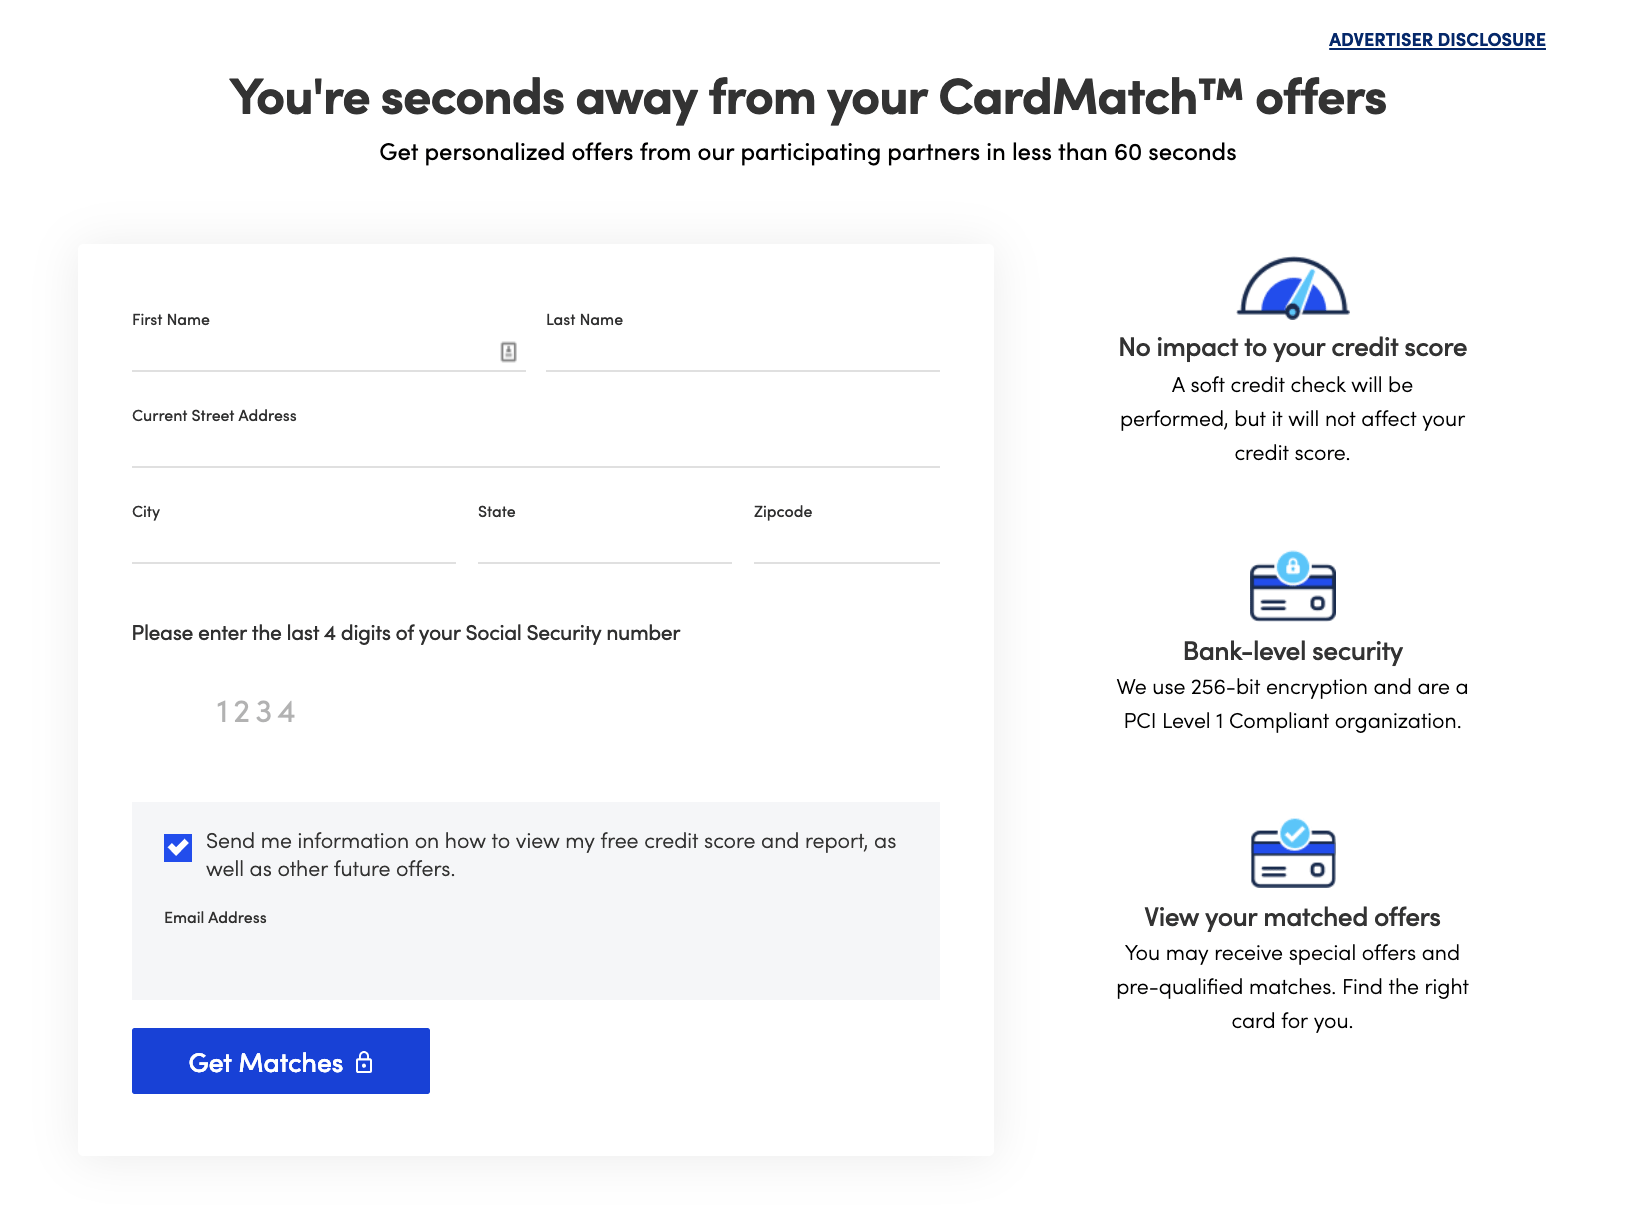 CardMatch information form